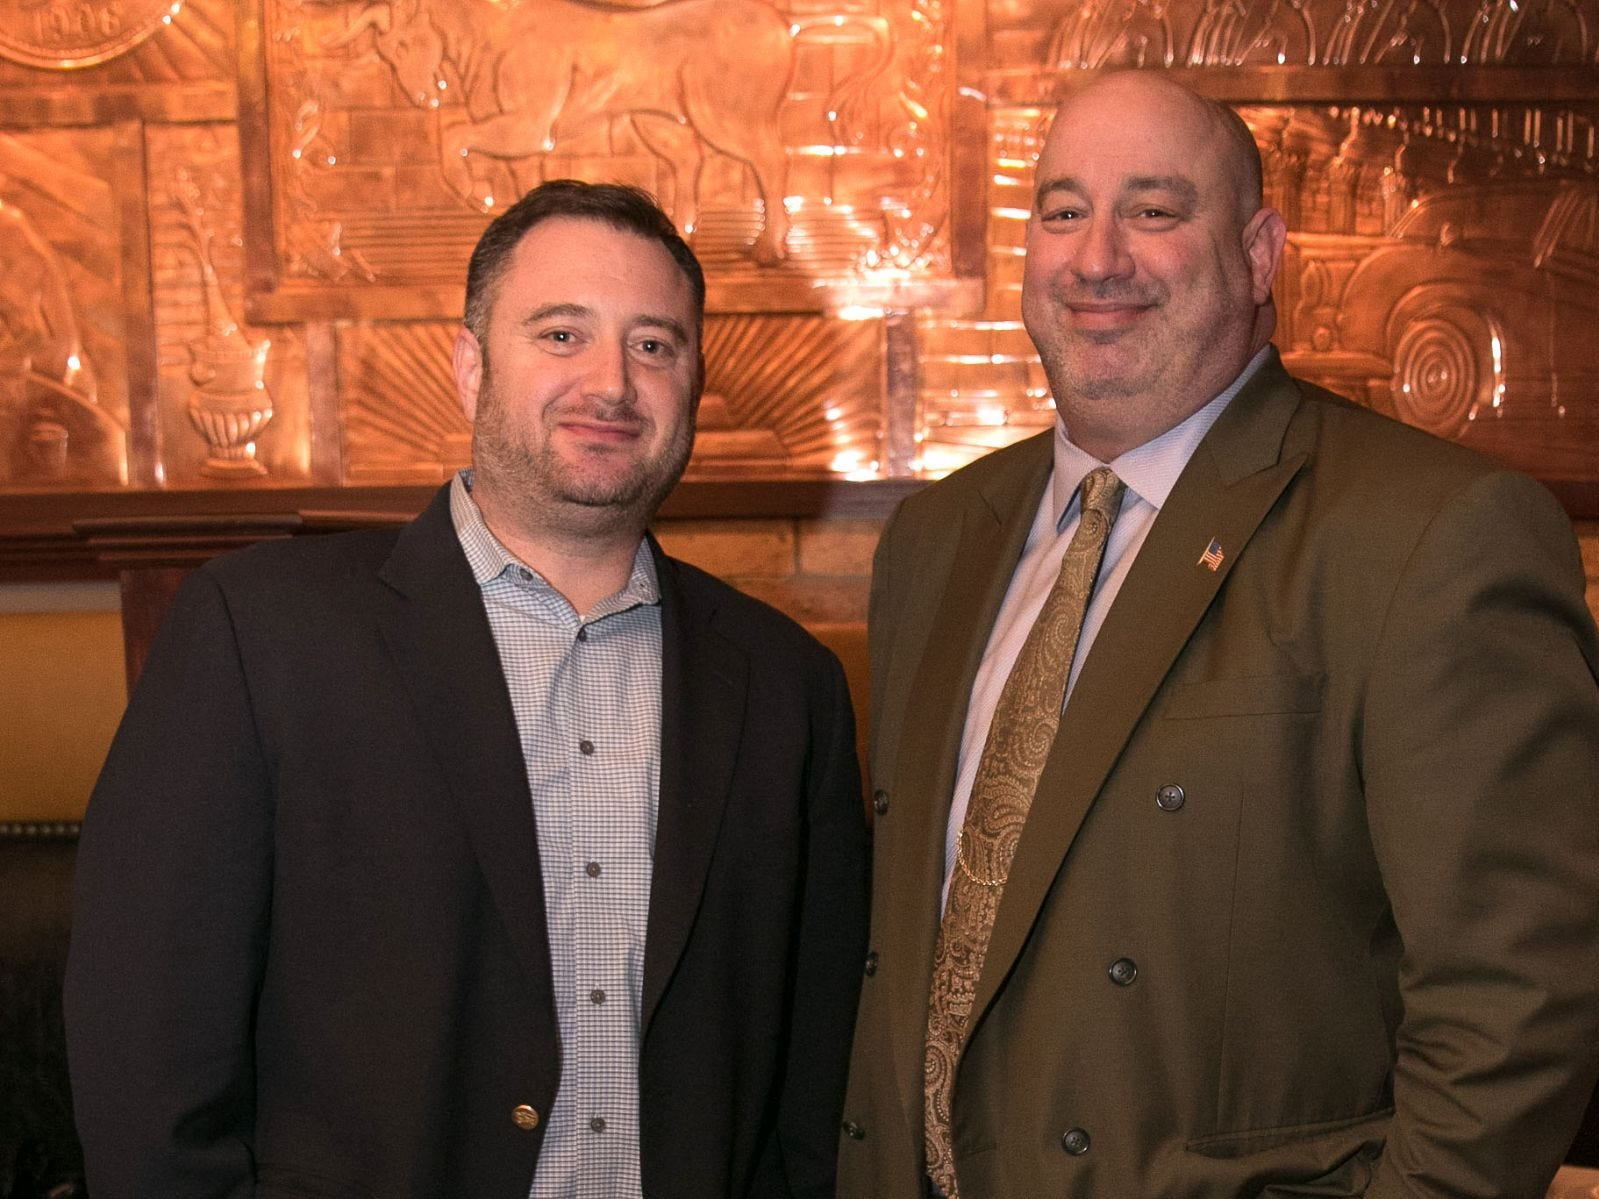 Scott Orr, Eric Abramson. Christina Gibbons of Special Properties held a cocktail reception to acknowledge her clients at Roots Steakhouse in Ridgewood. 02/07/2019